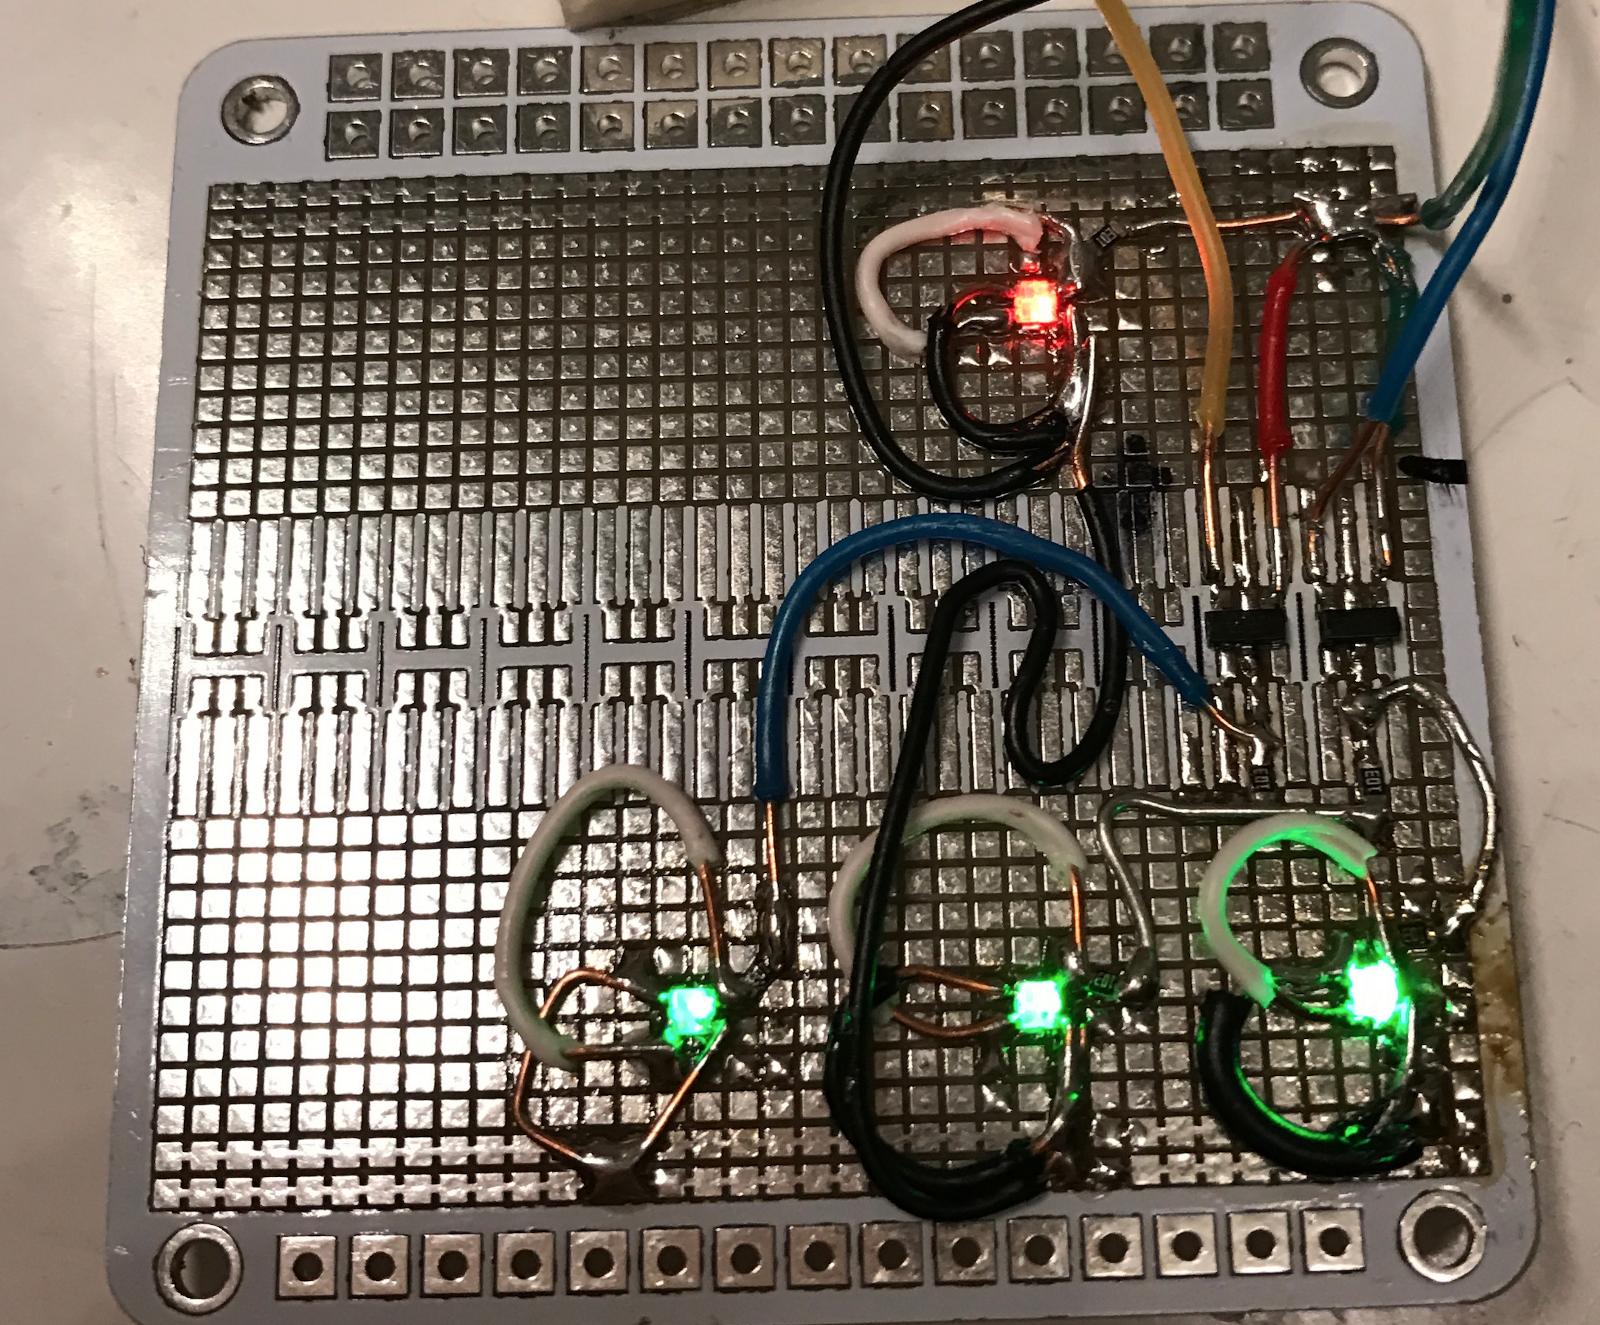 Exploring Ternary Logic Building Inverters Using Home Wiring Circuit Simulator Here Is Where The Differ When Given Zero Input Simple Inverter Shown In Middle Also Outputs But Positive